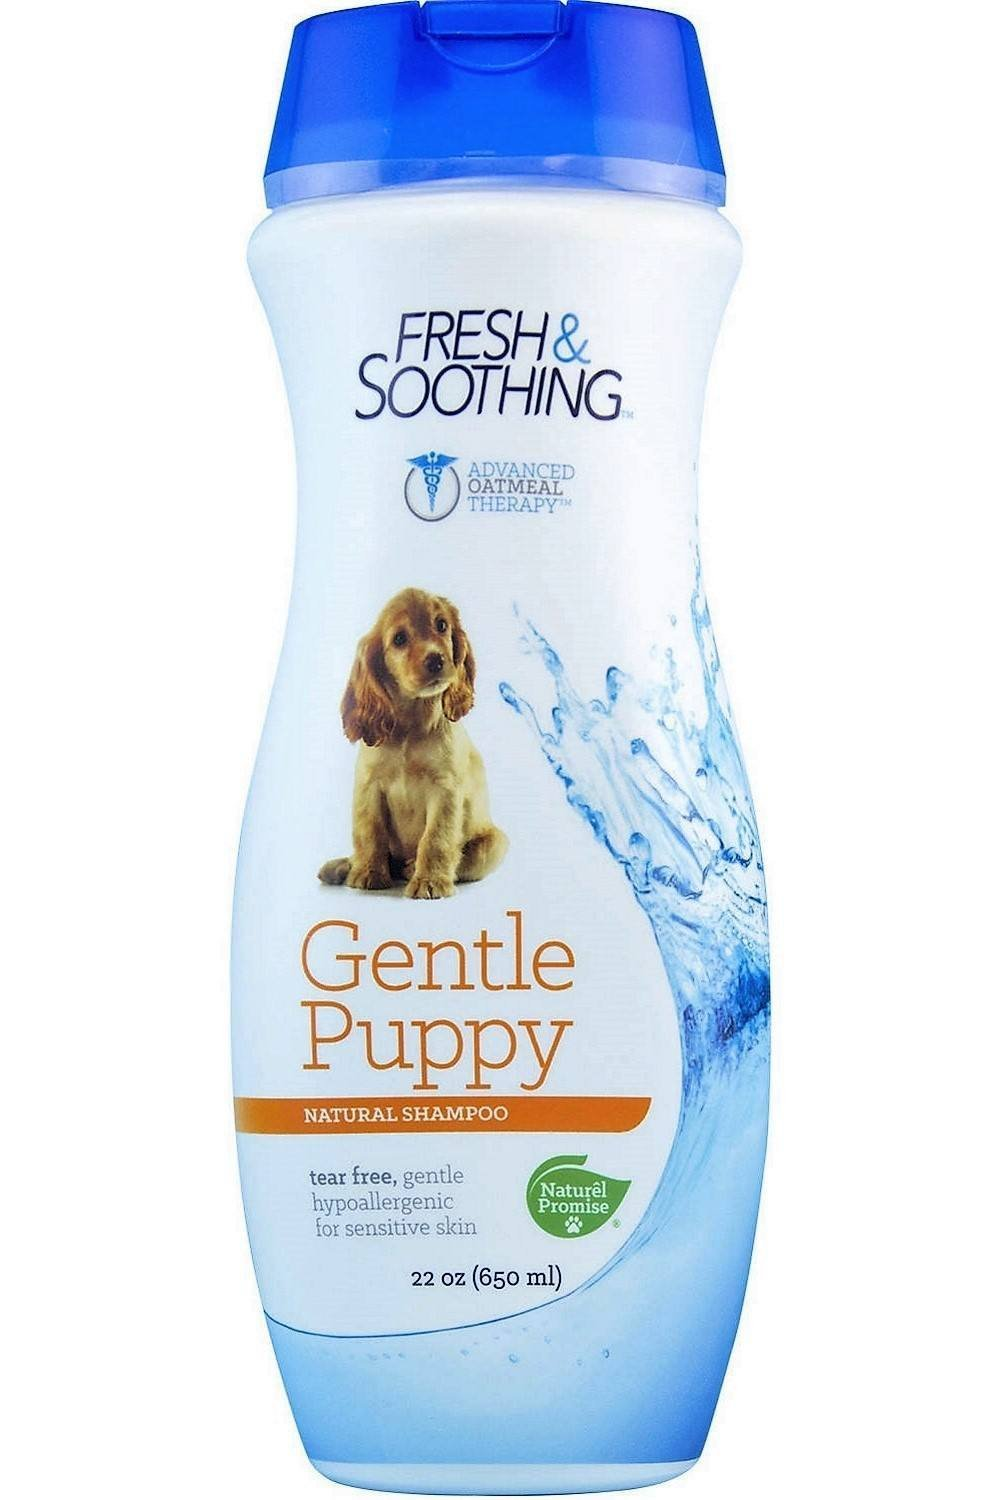 Fresh & Soothing Gentle Puppy Natural Shampoo 22oz